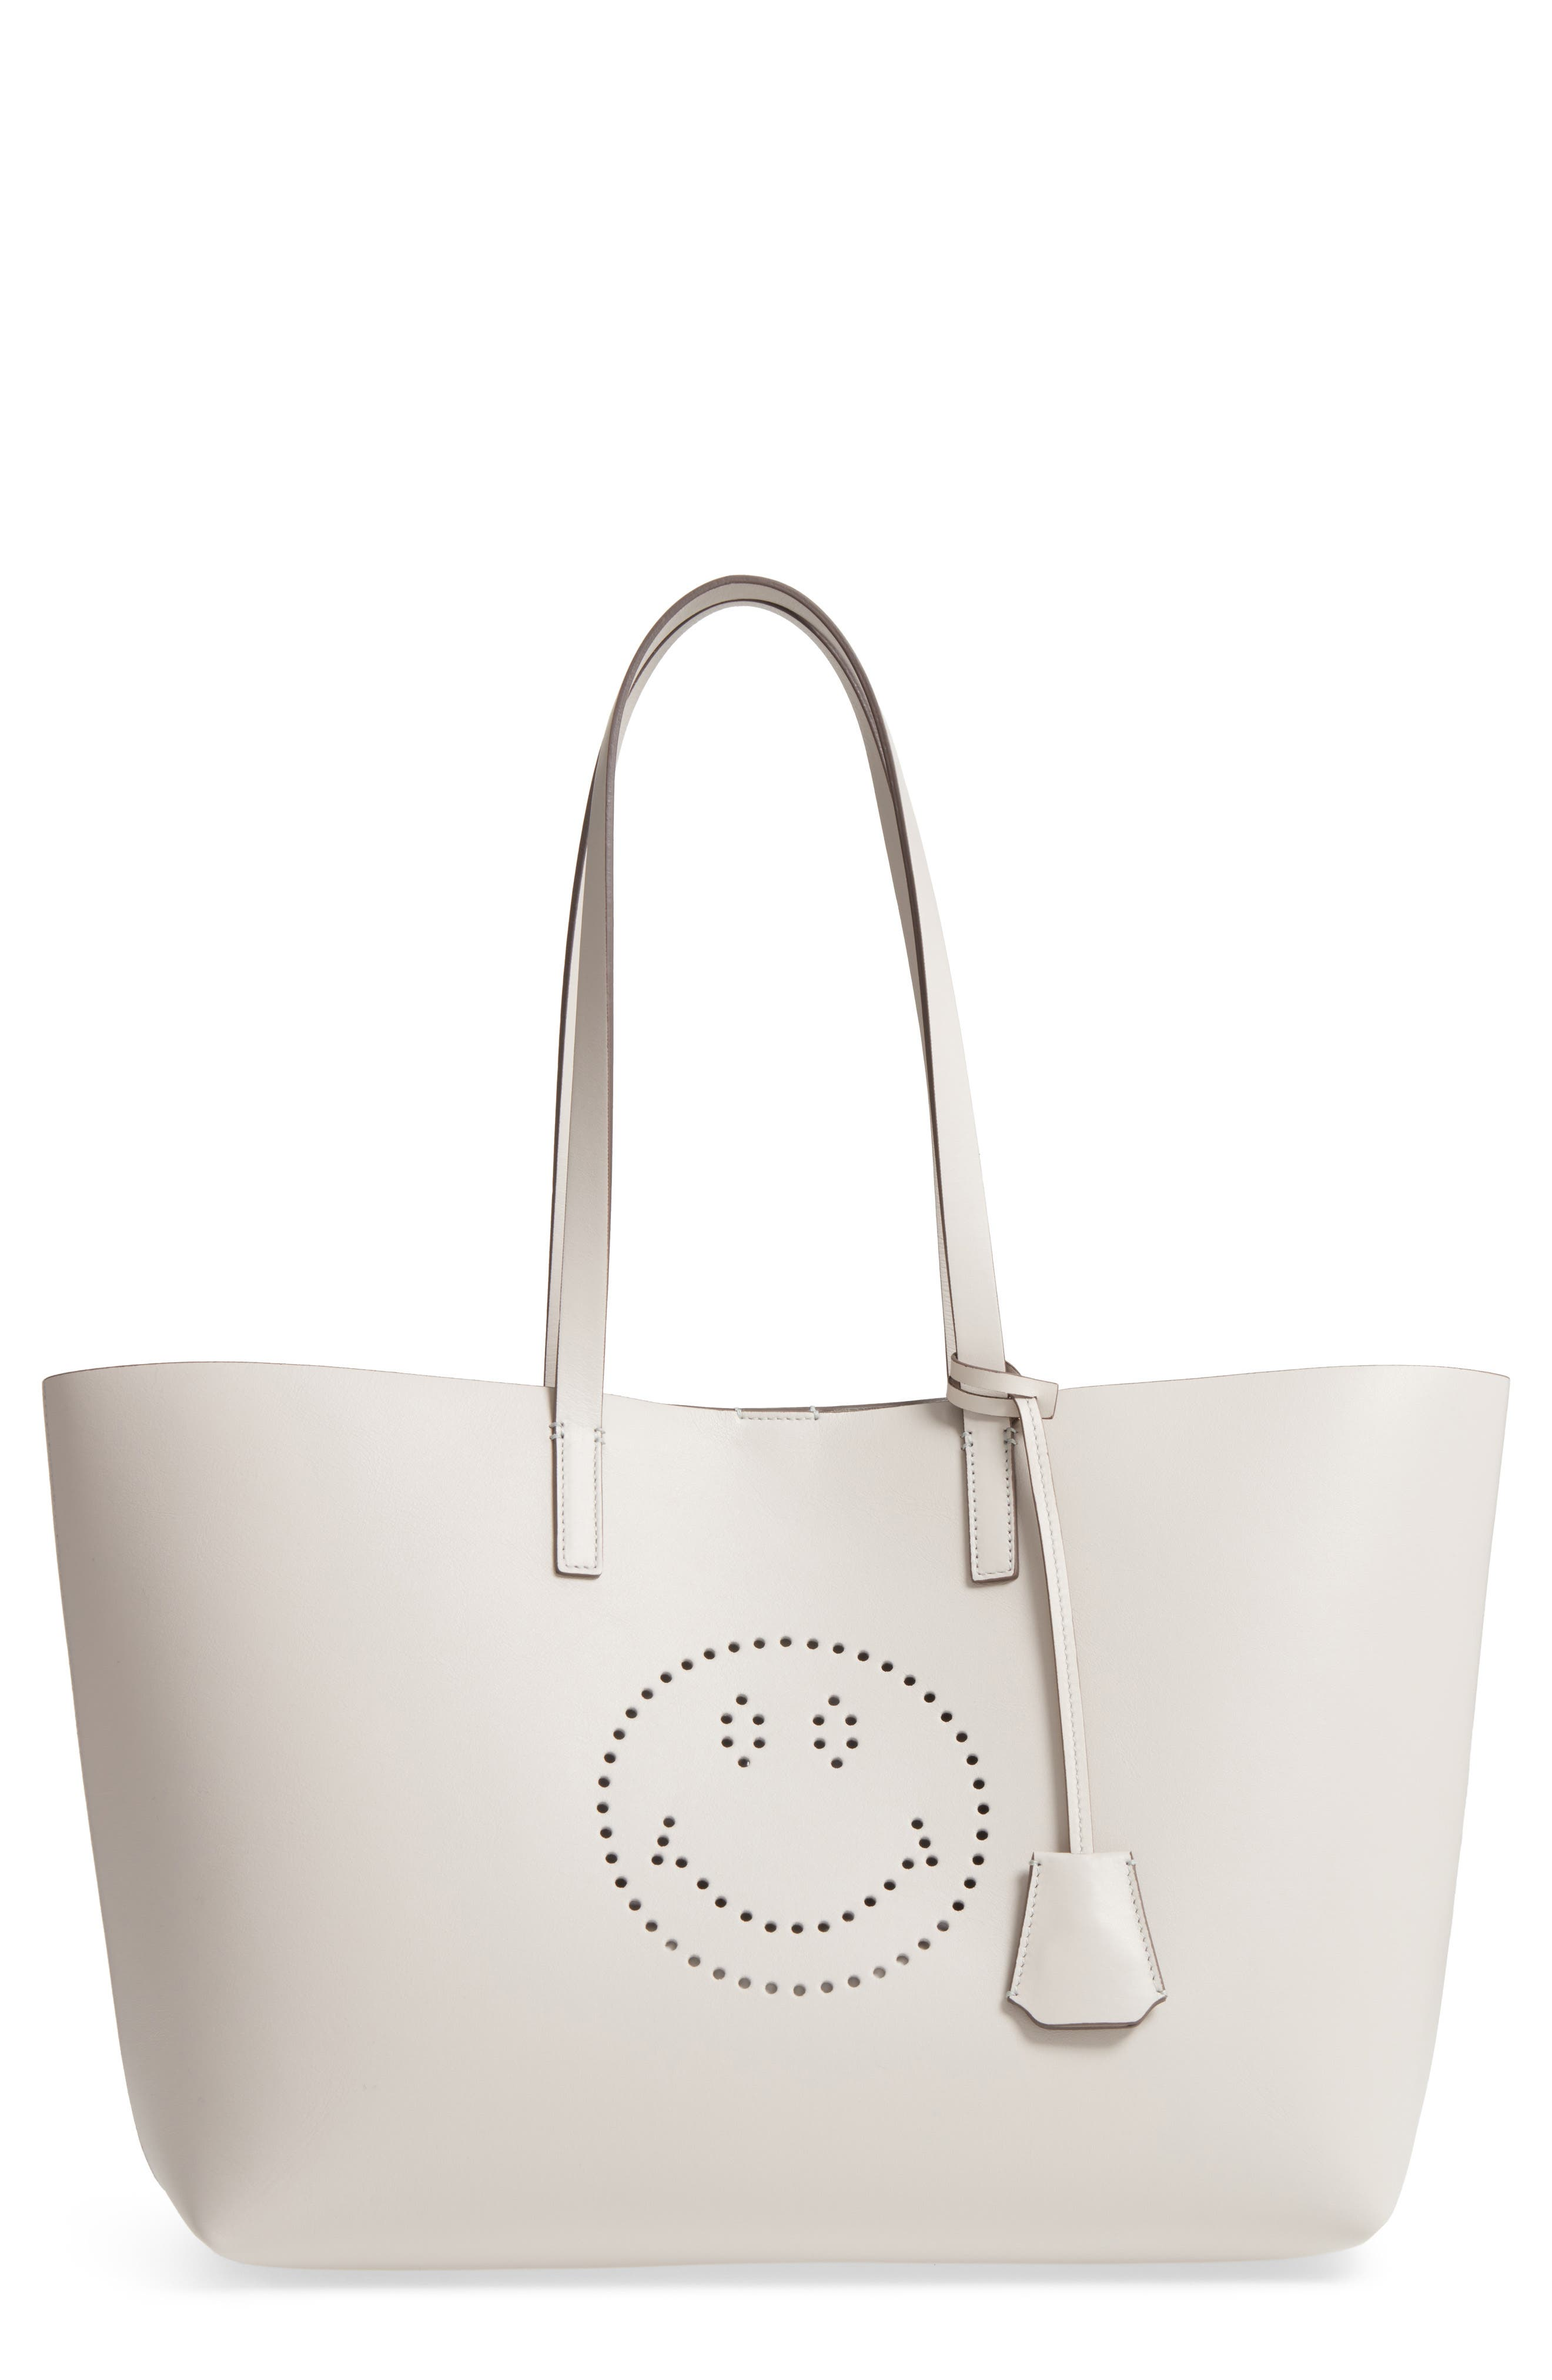 Ebury Smiley Leather Tote,                         Main,                         color, 020